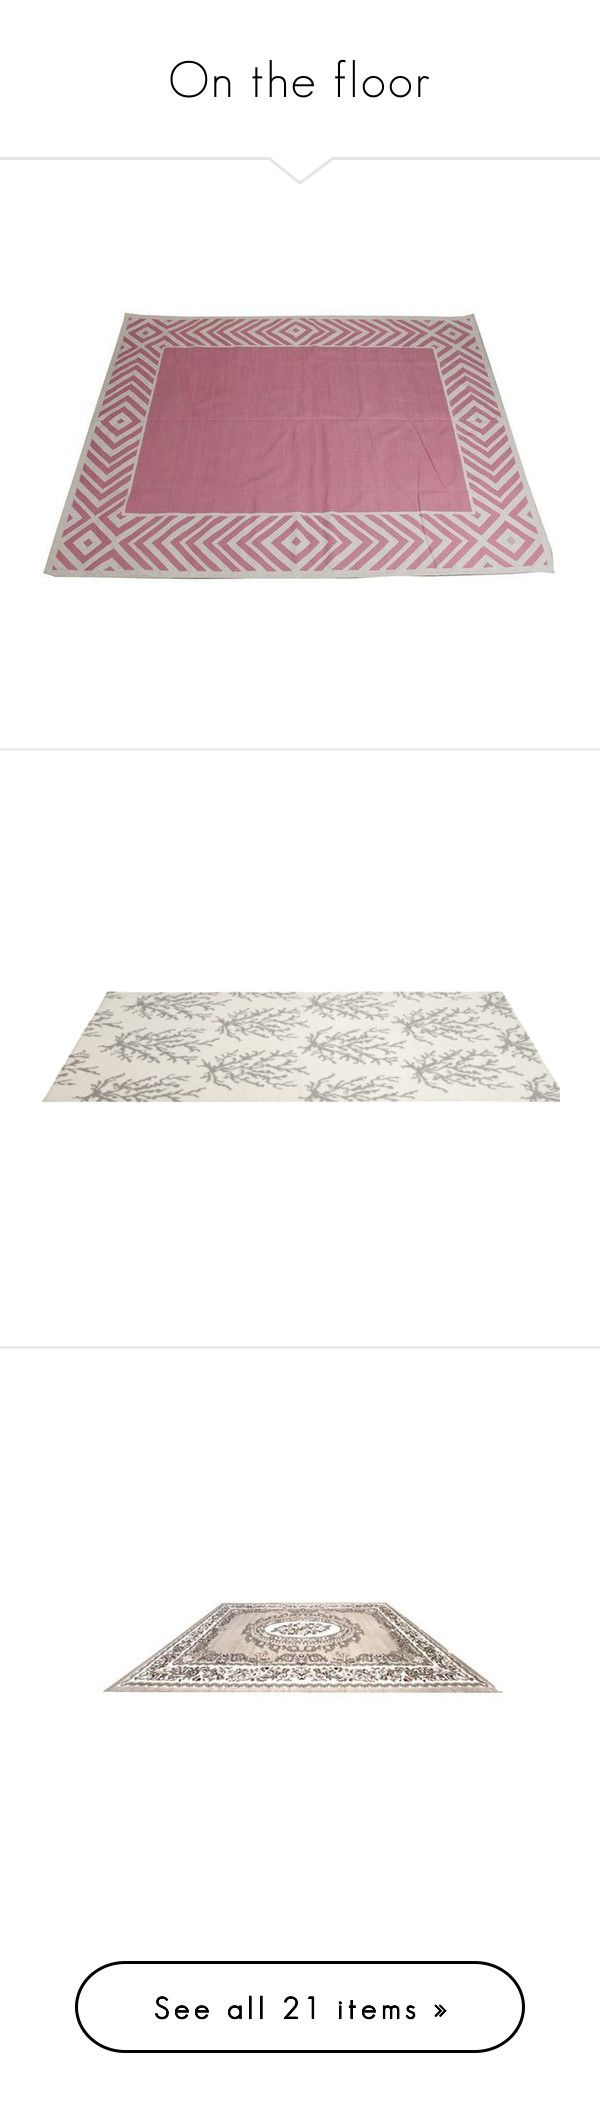 """""""On the floor"""" by amara-m-hafeez ❤ liked on Polyvore featuring home, rugs, flatweave cotton rug, flat weave rug, madeline weinrib rugs, flatwoven rug, cotton area rugs, tapete, flat weave rugs and flat woven area rugs"""